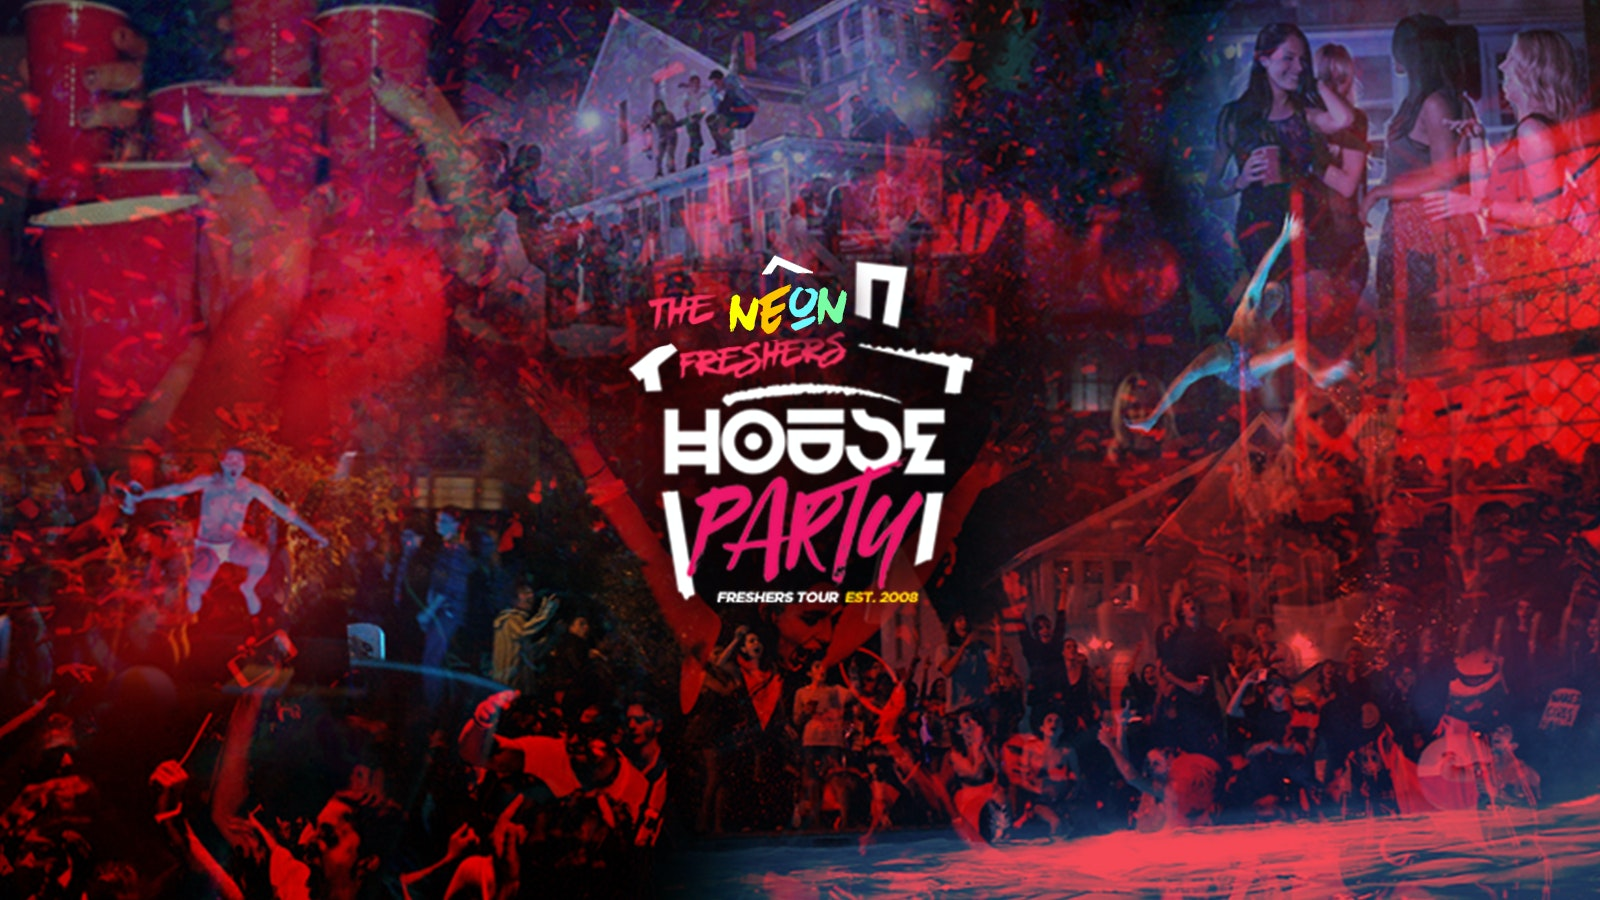 Neon Freshers House Party // Canterbury Freshers 2019